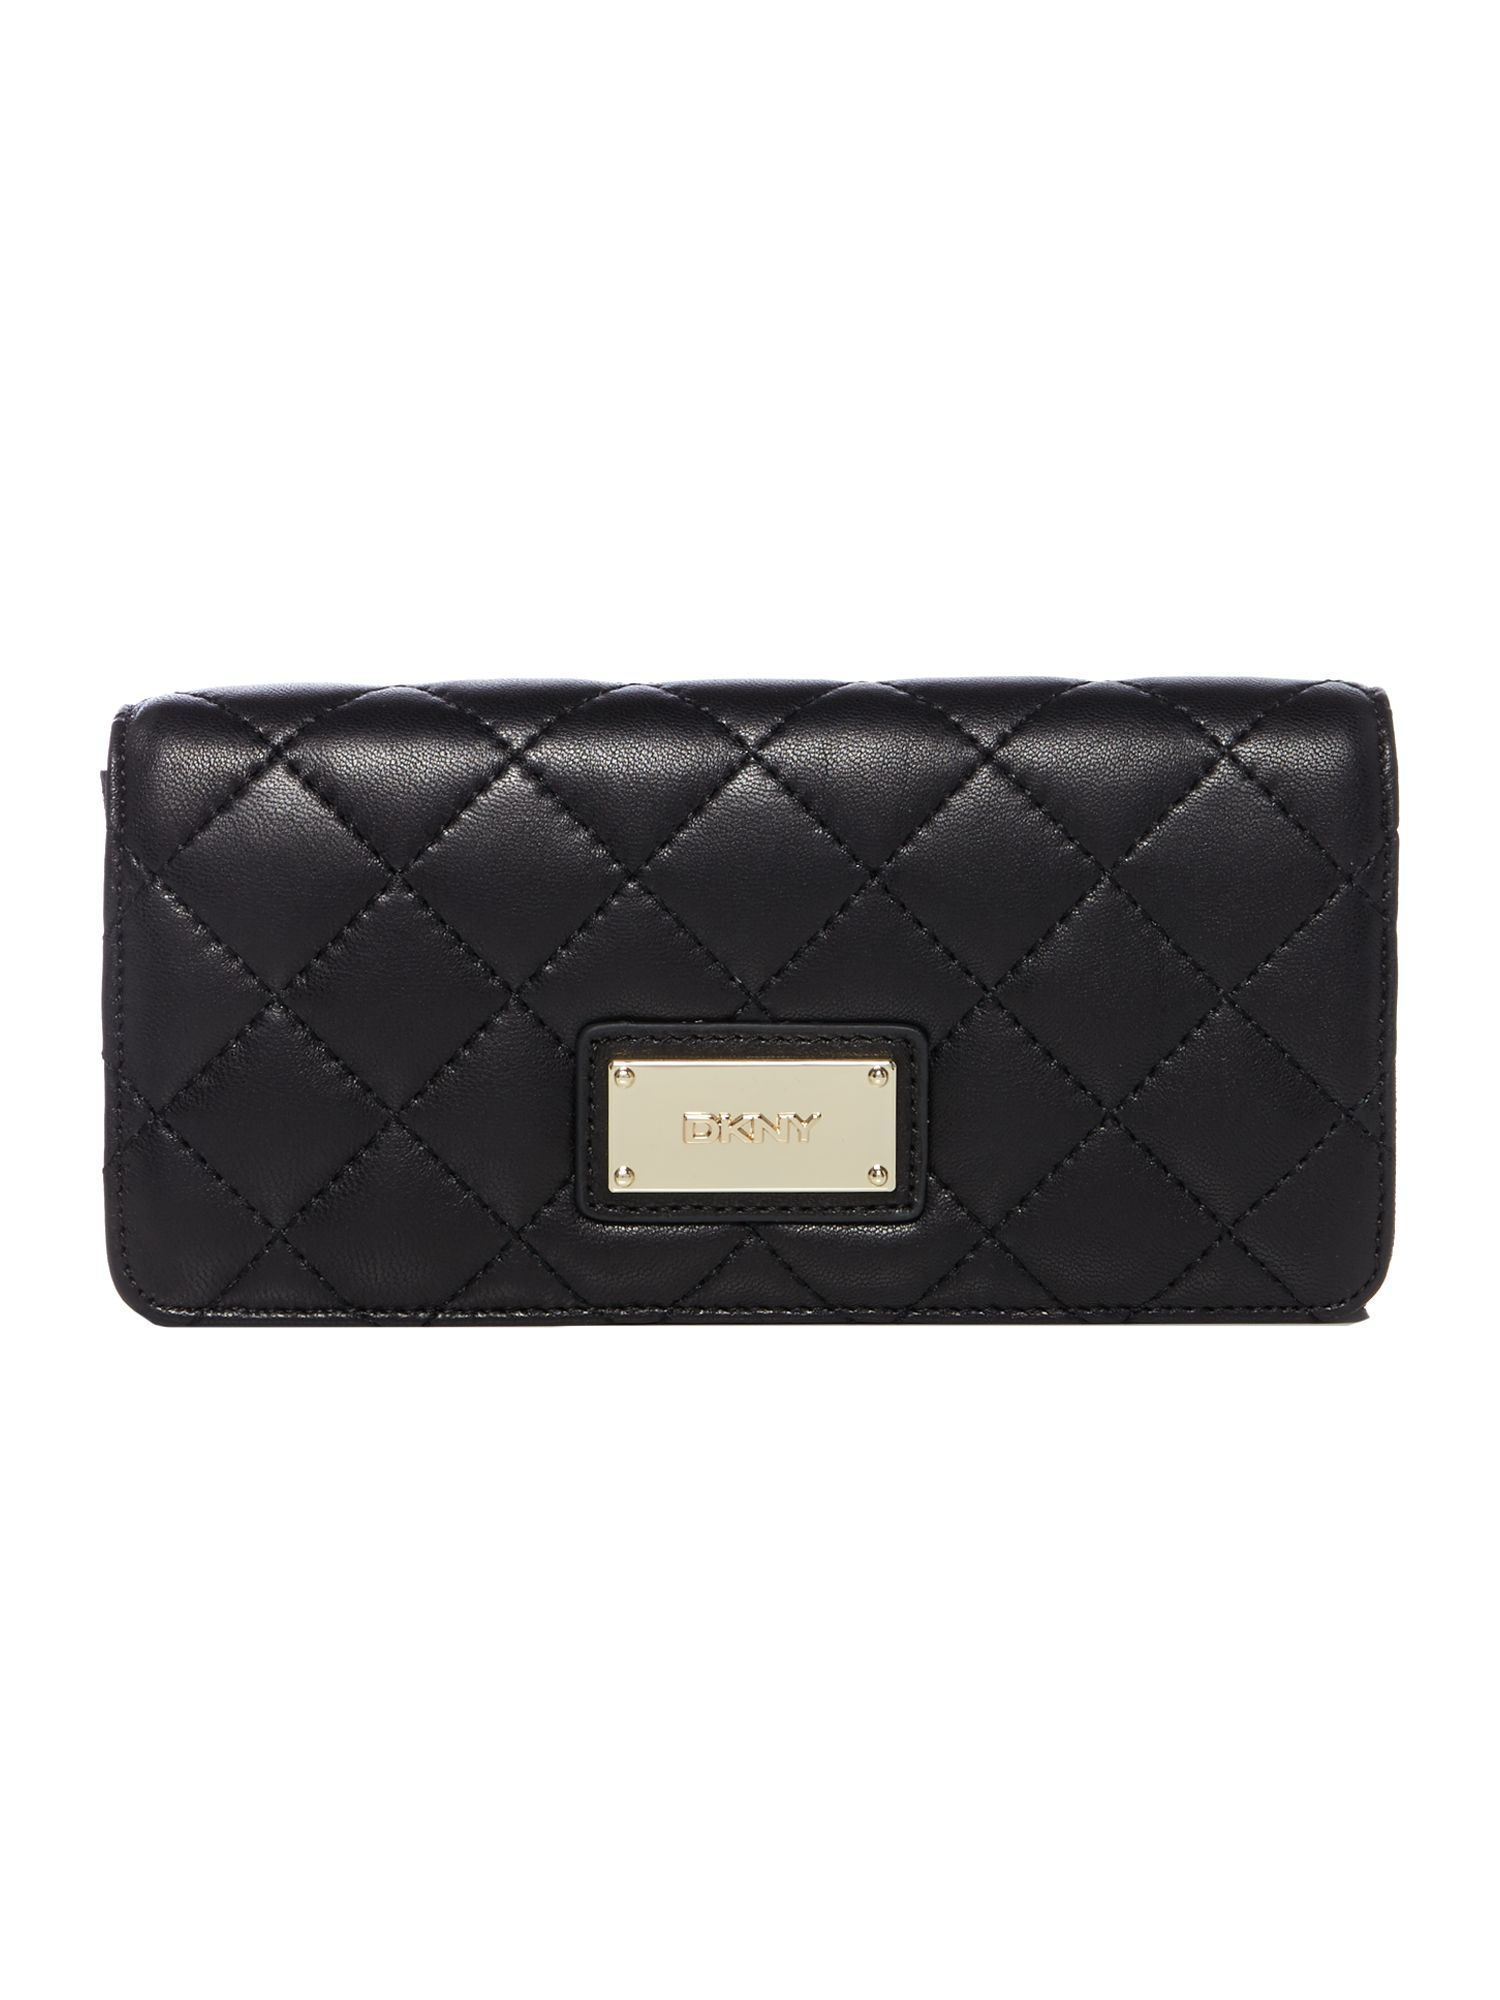 Dkny Quilted Nappa Black Large Flap Over Purse in Black | Lyst : dkny black quilted purse - Adamdwight.com